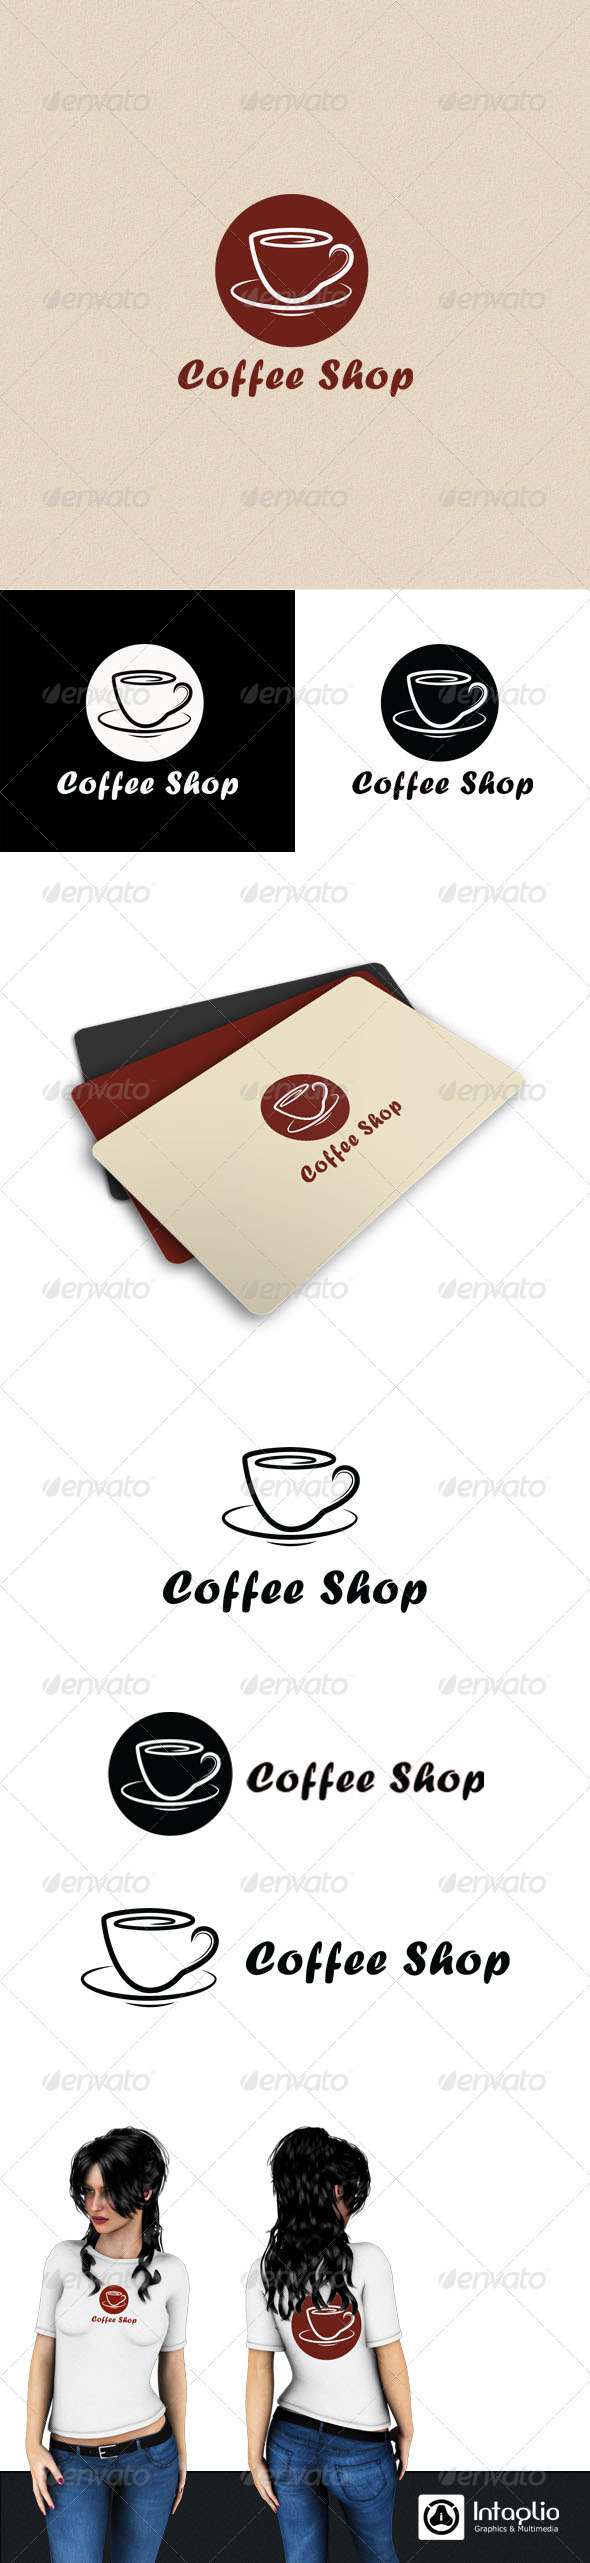 Coffee Shop Logo - Objects Logo Templates